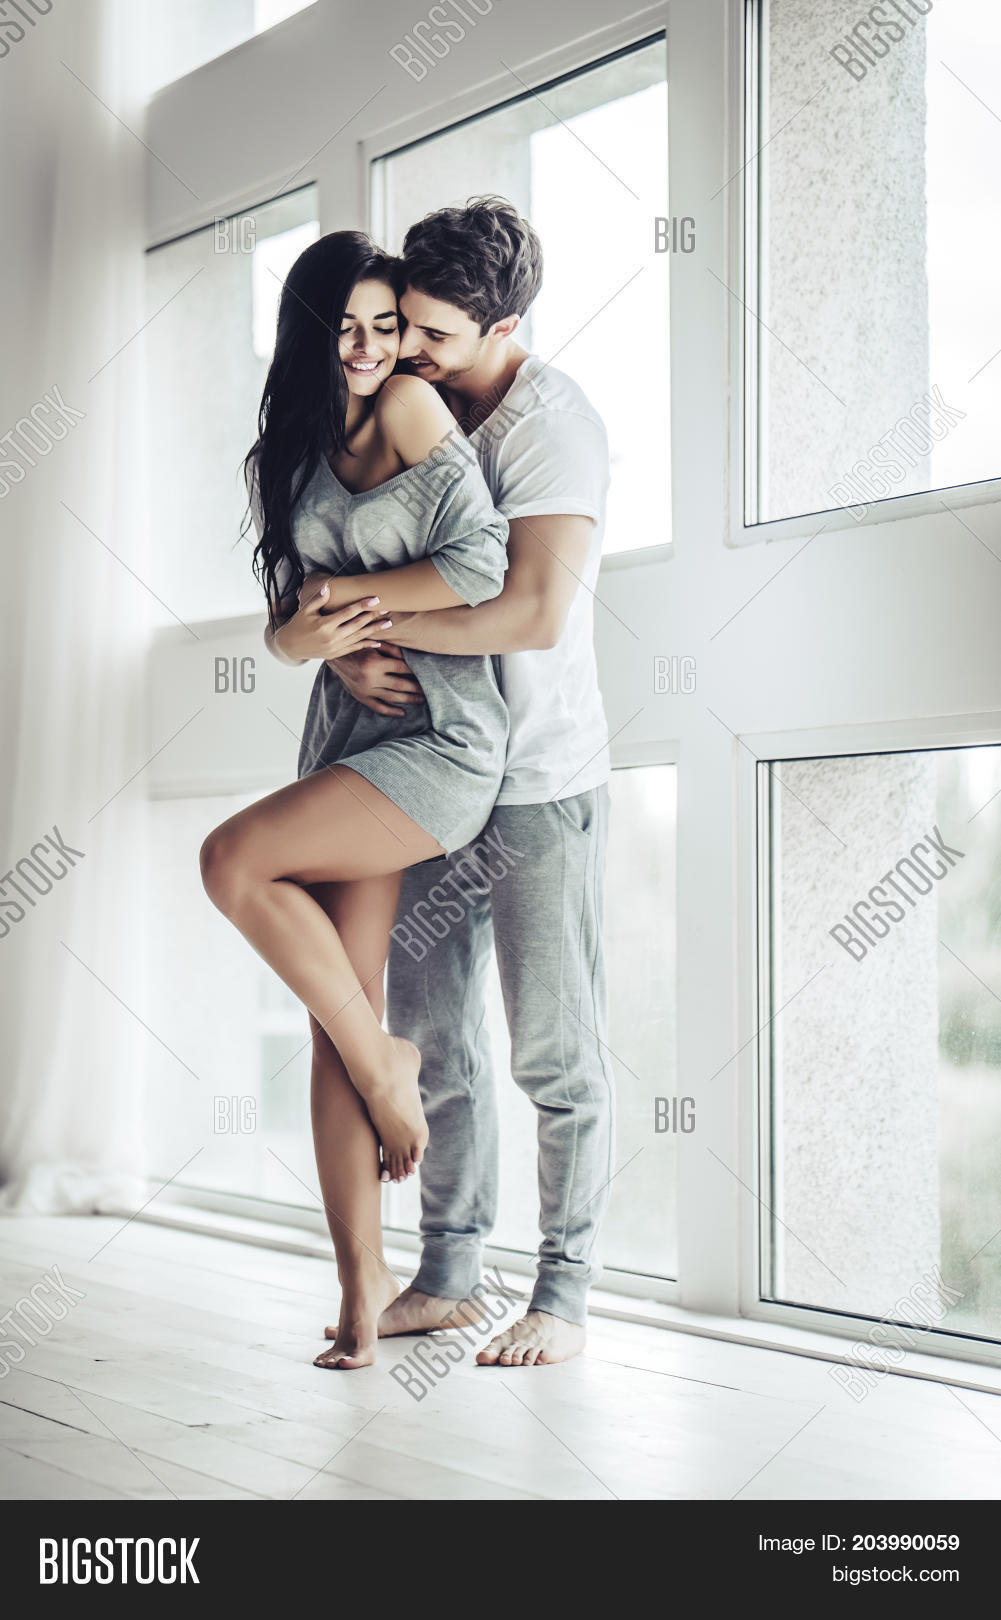 Love Couple Home Image Photo Free Trial Bigstock